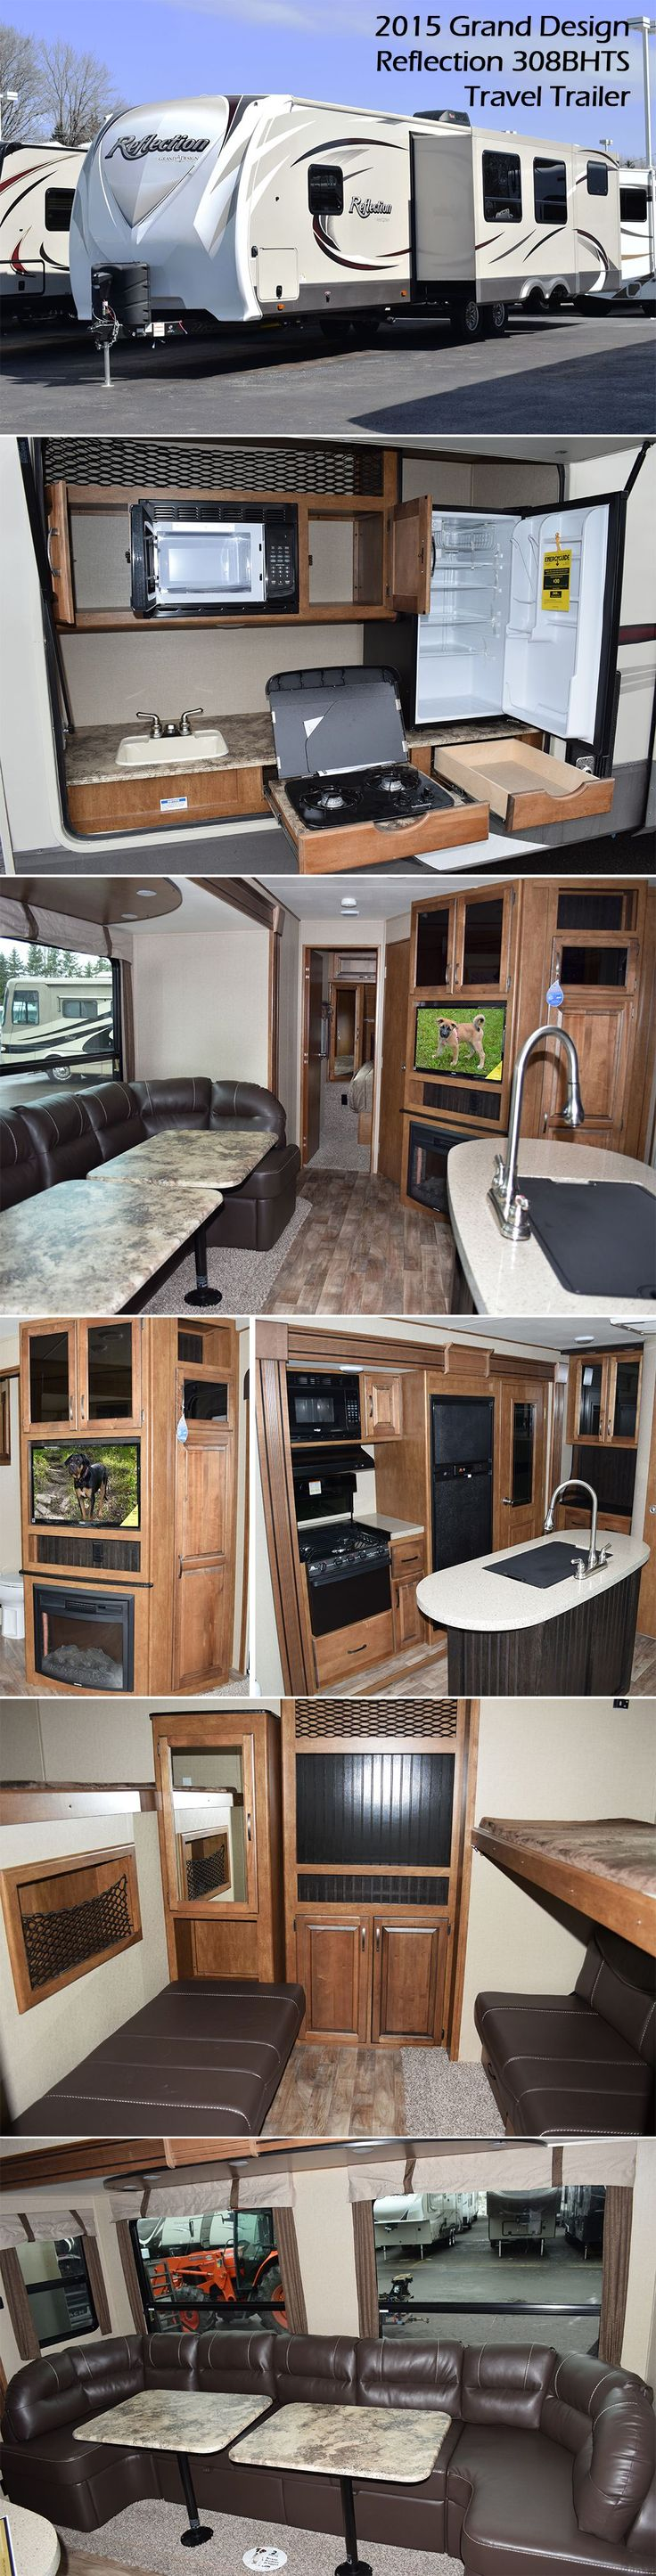 Flawless 24 Best Grand Design Rv https://camperism.co/2018/02/08/24-best-grand-design-rv/ One of the fantastic things about camping is you can receive a waterfront property for zero dollars each evening